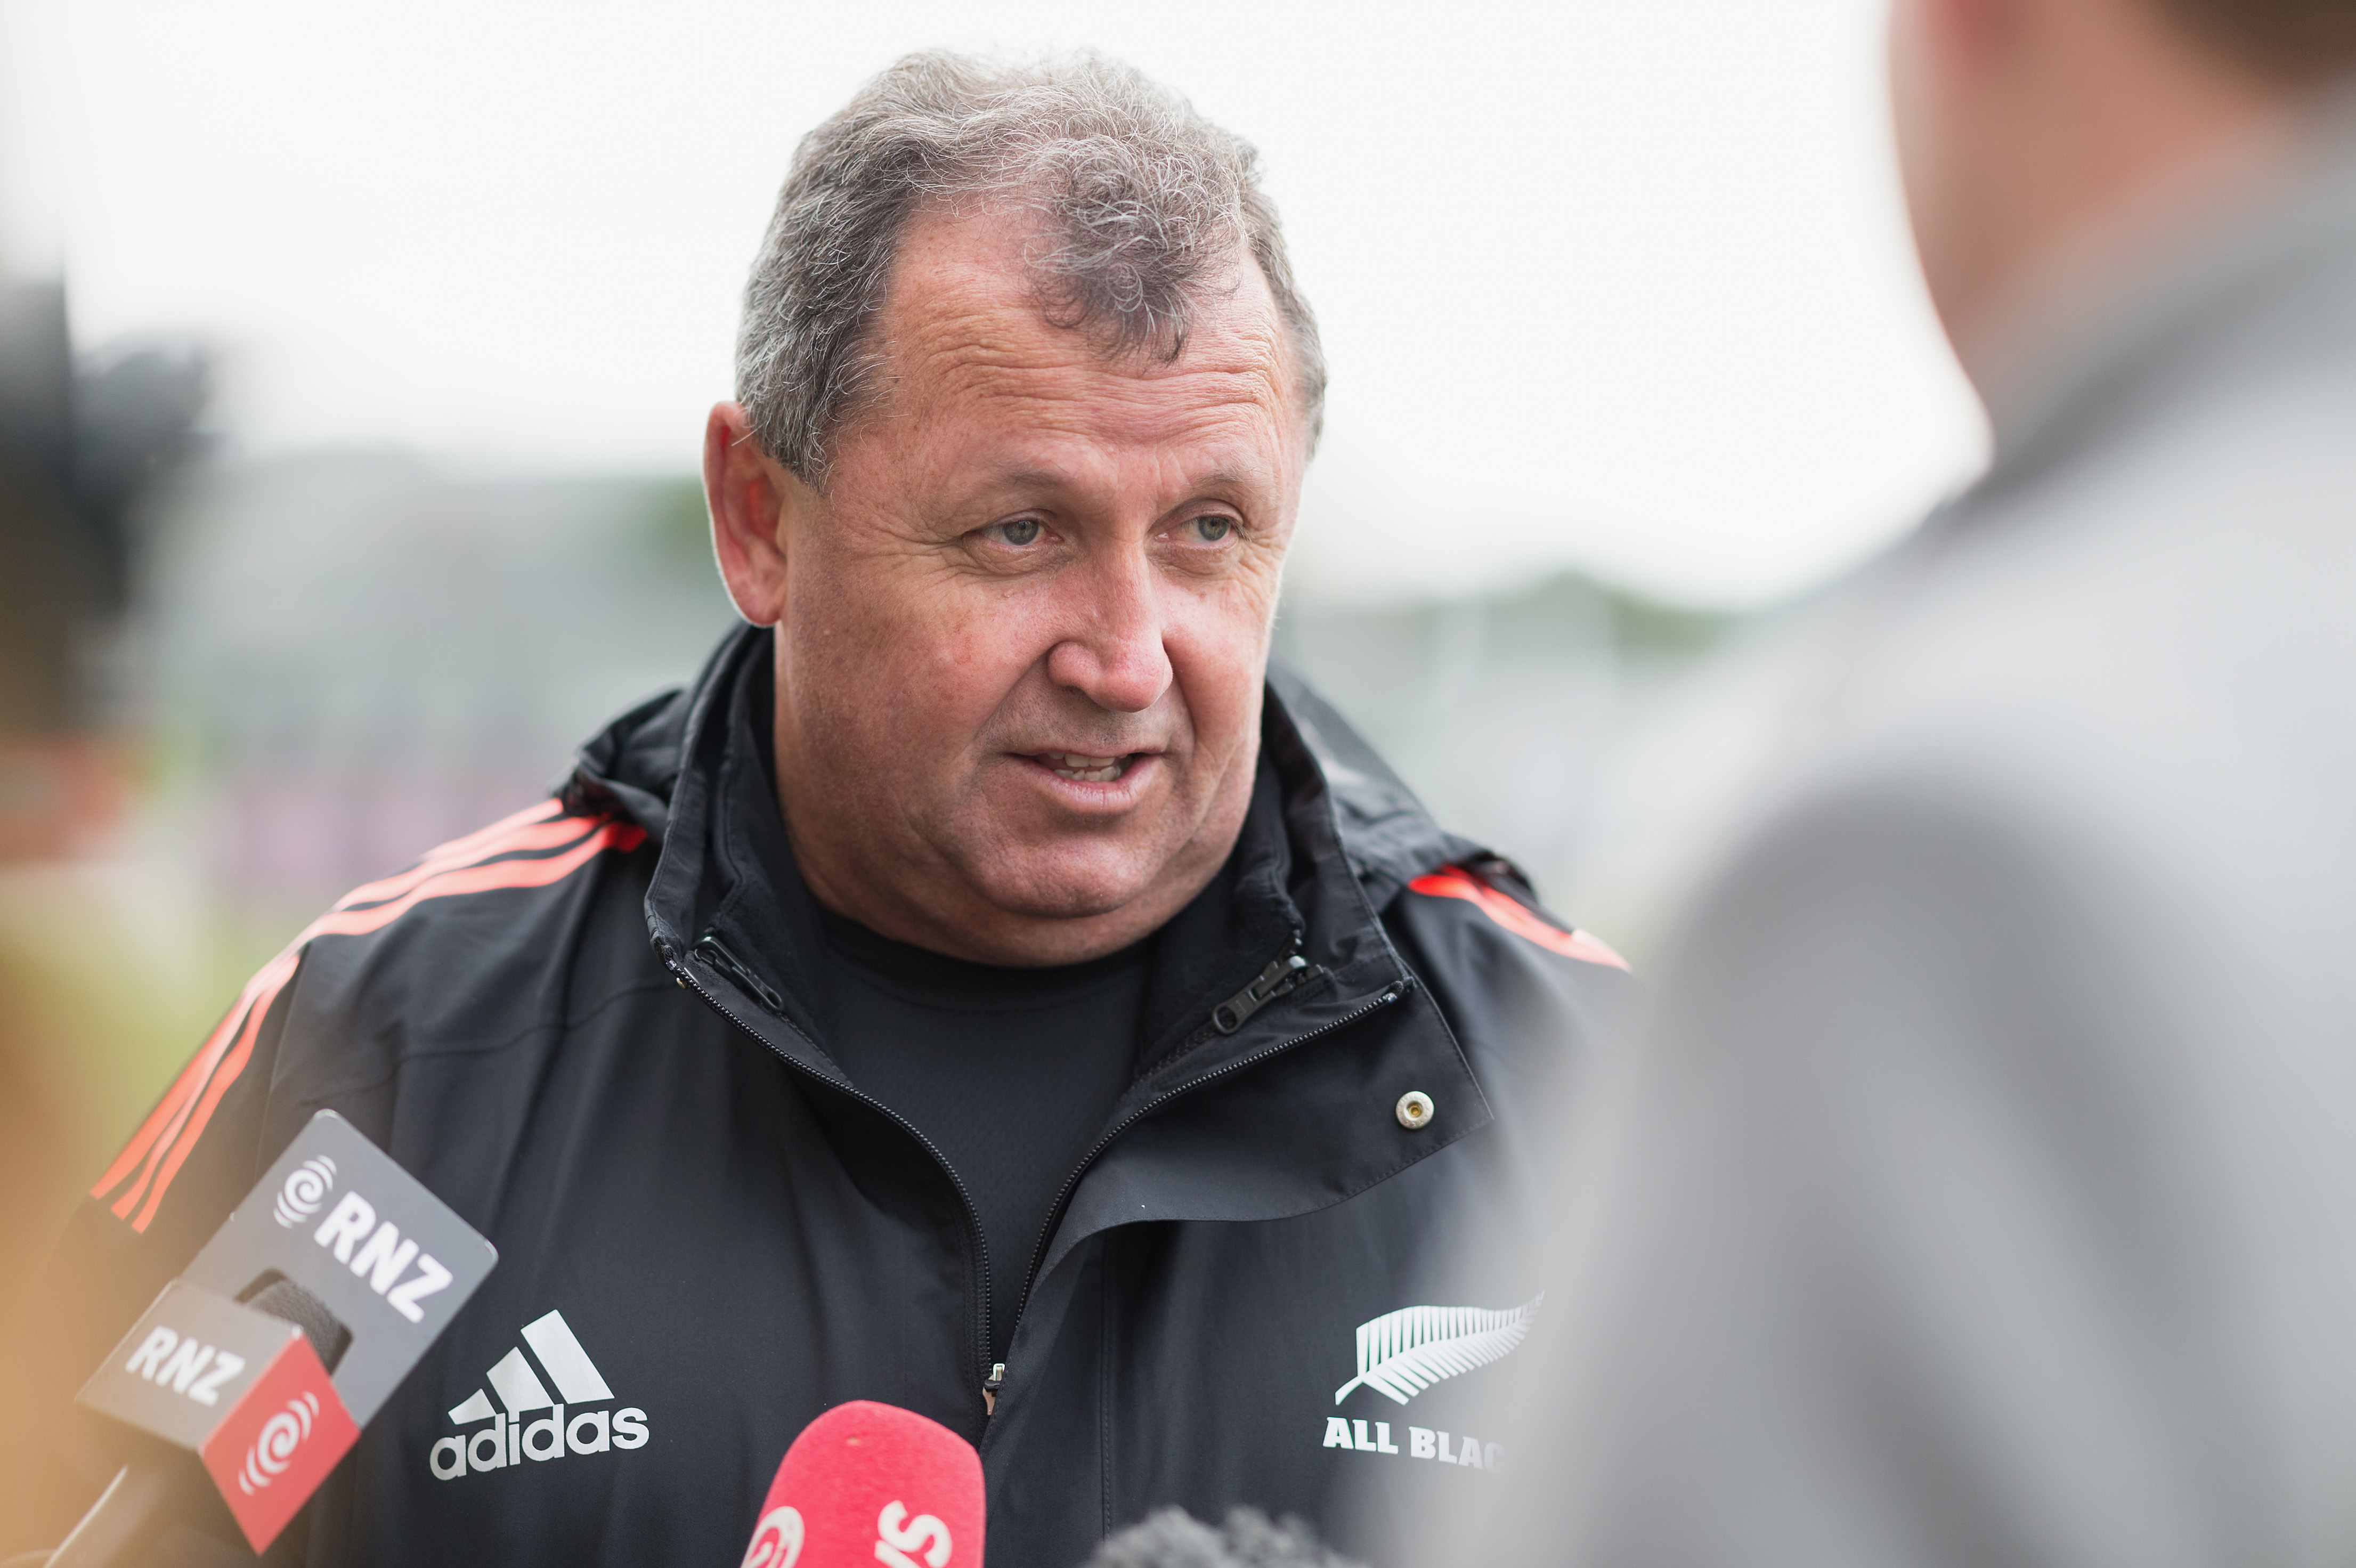 """All Blacks boss Ian Foster on Lions Test: """"It put me to sleep"""" - Rugby World"""